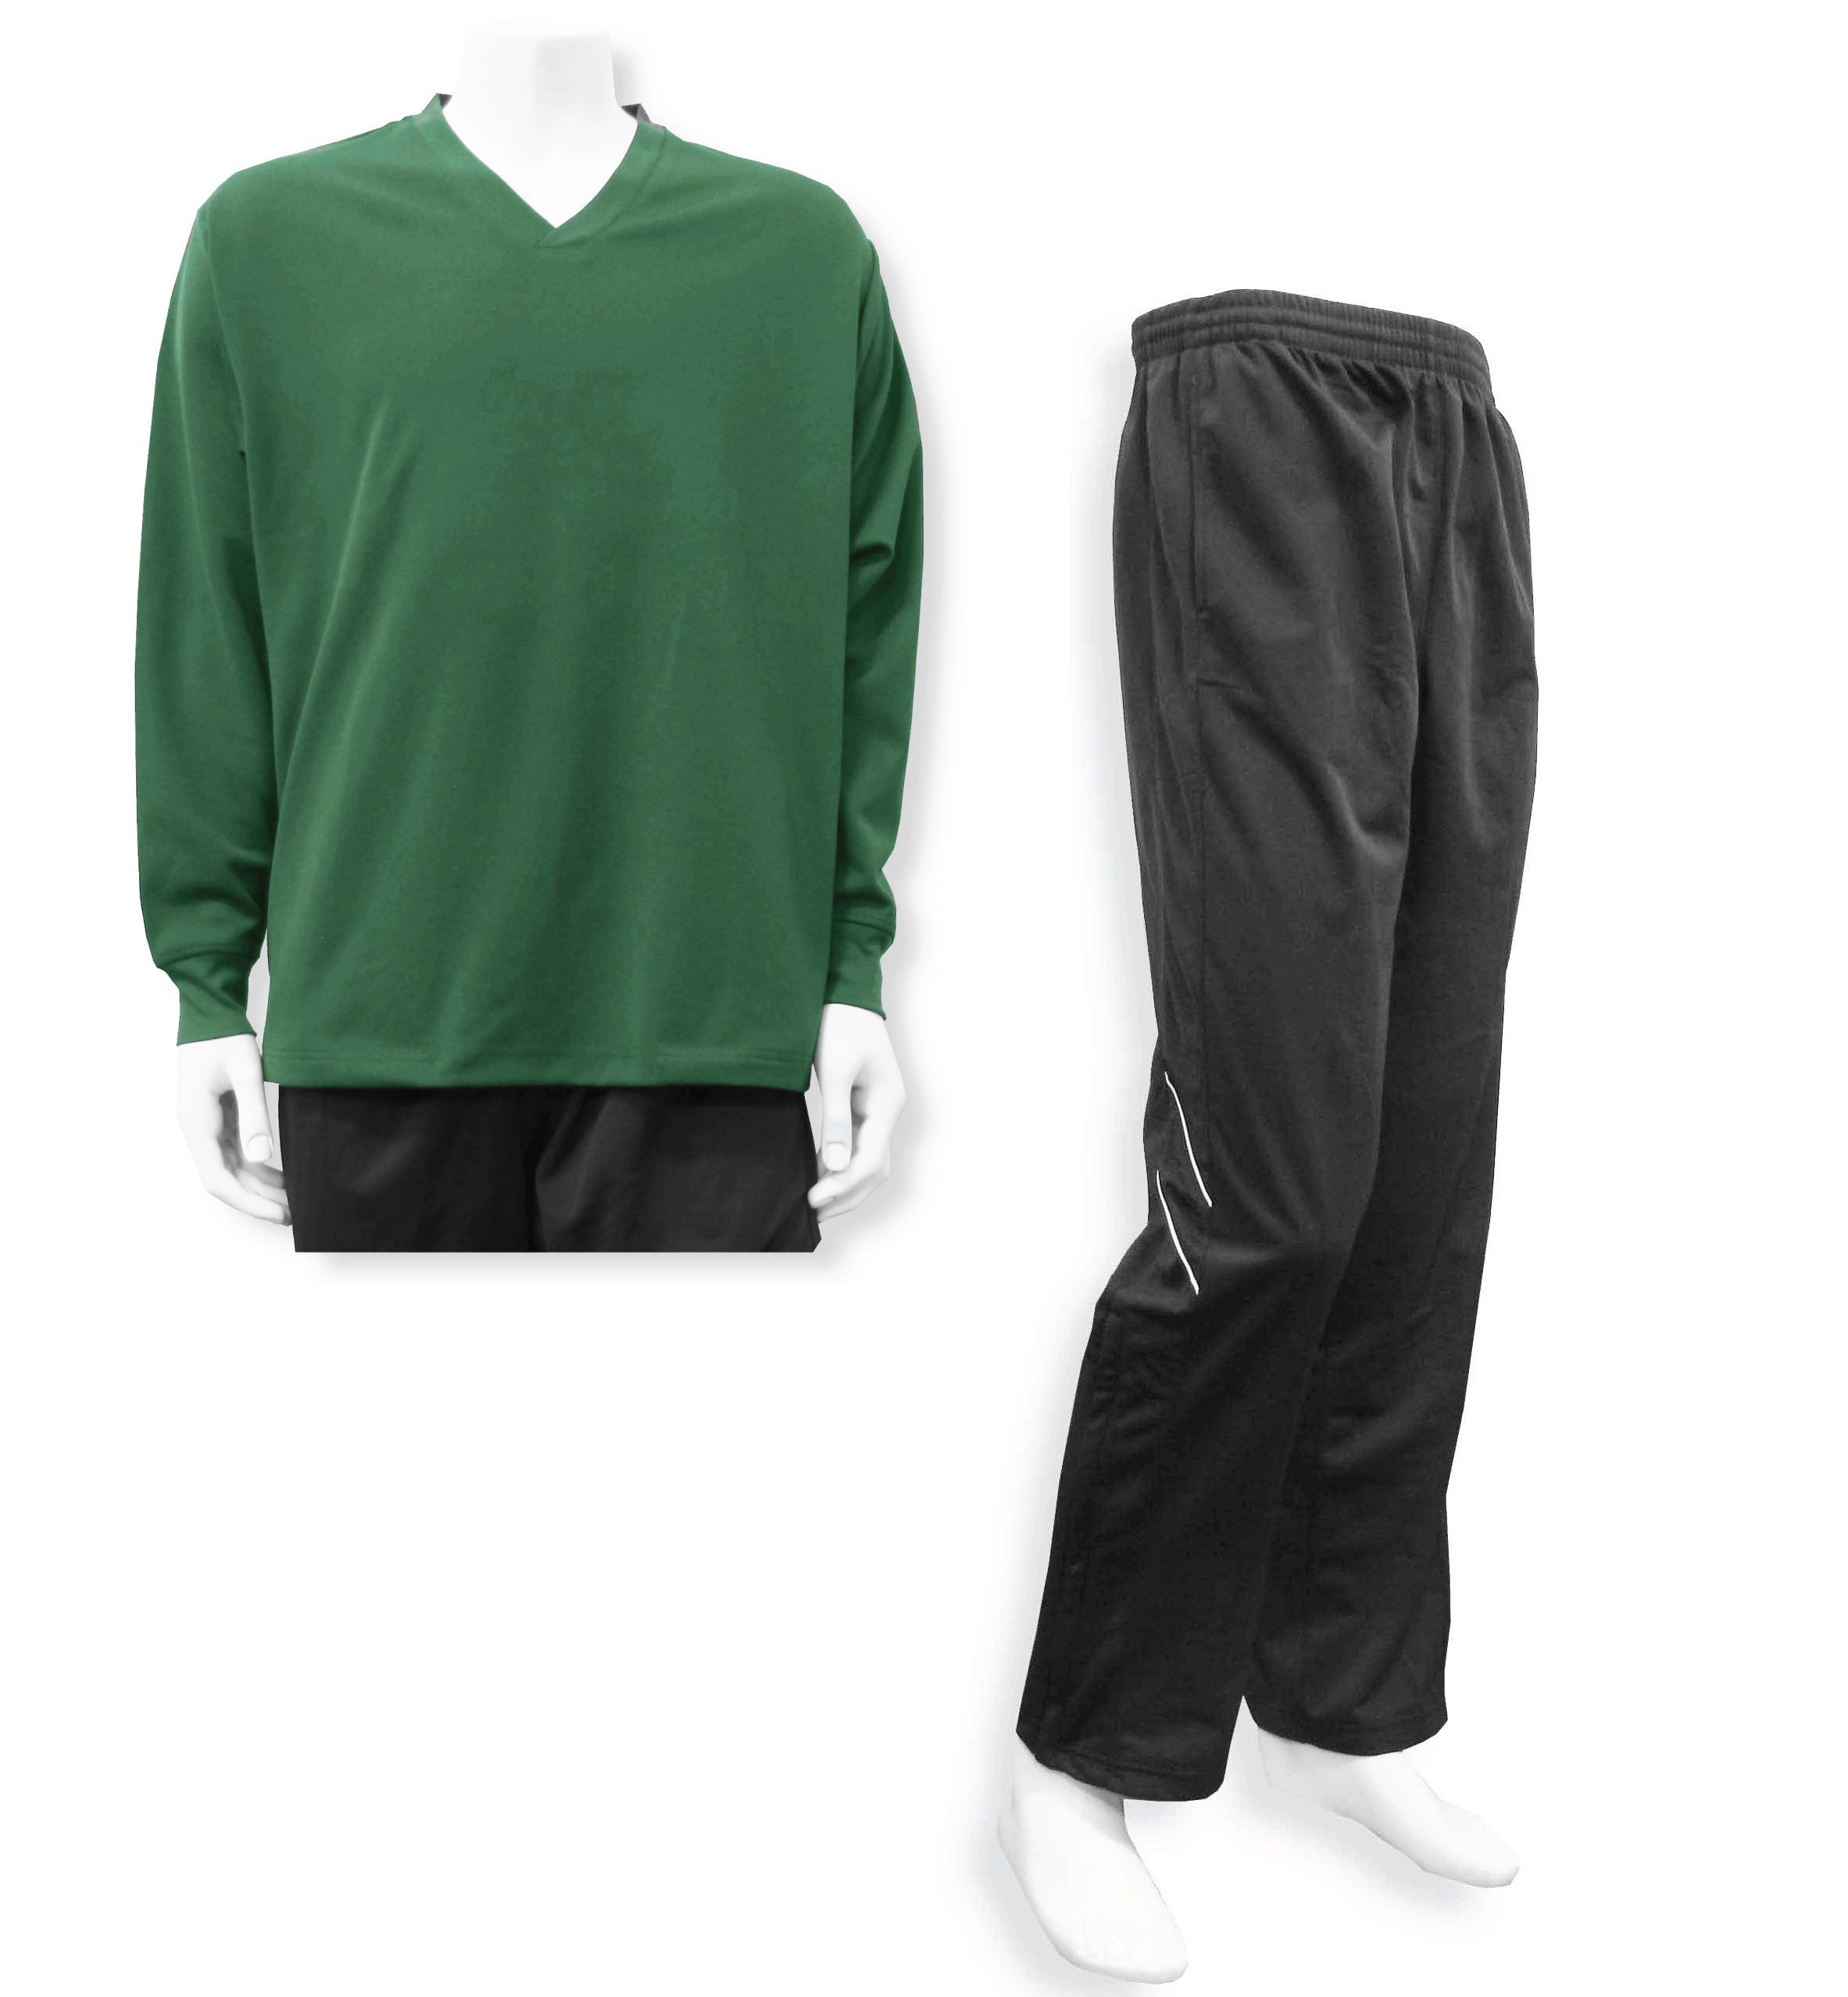 Men's casual track suit in forest/black by Code Four Athletics